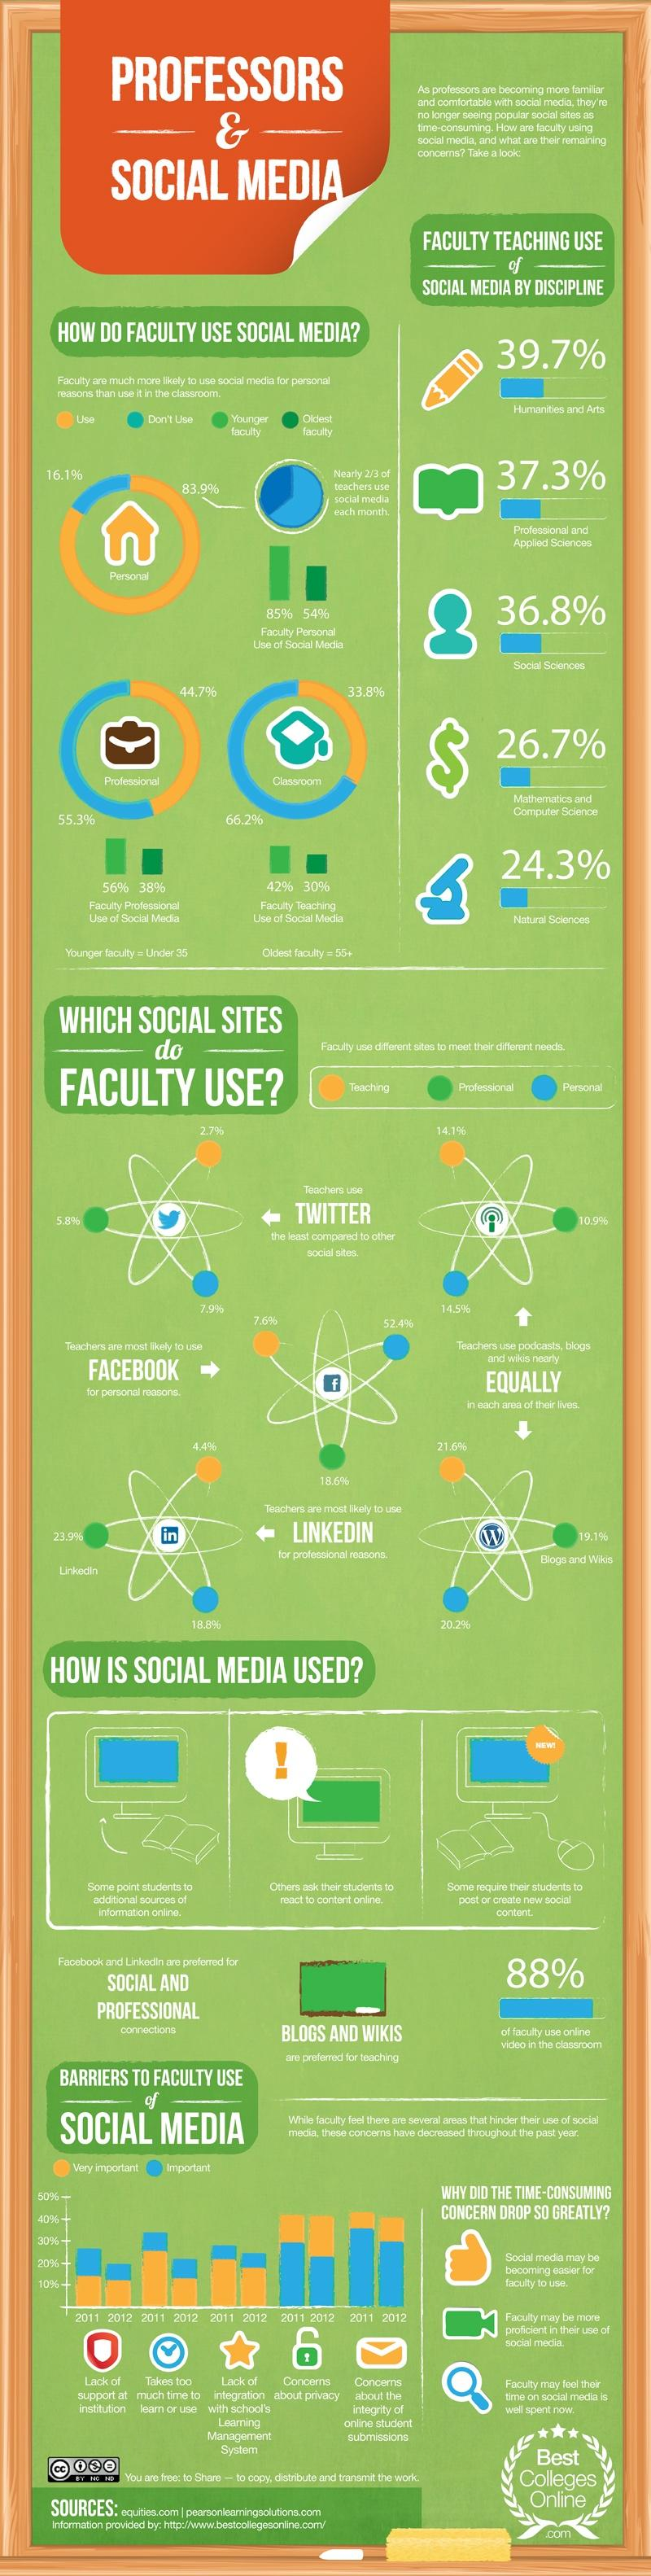 Professors-And-Social-Media-etr